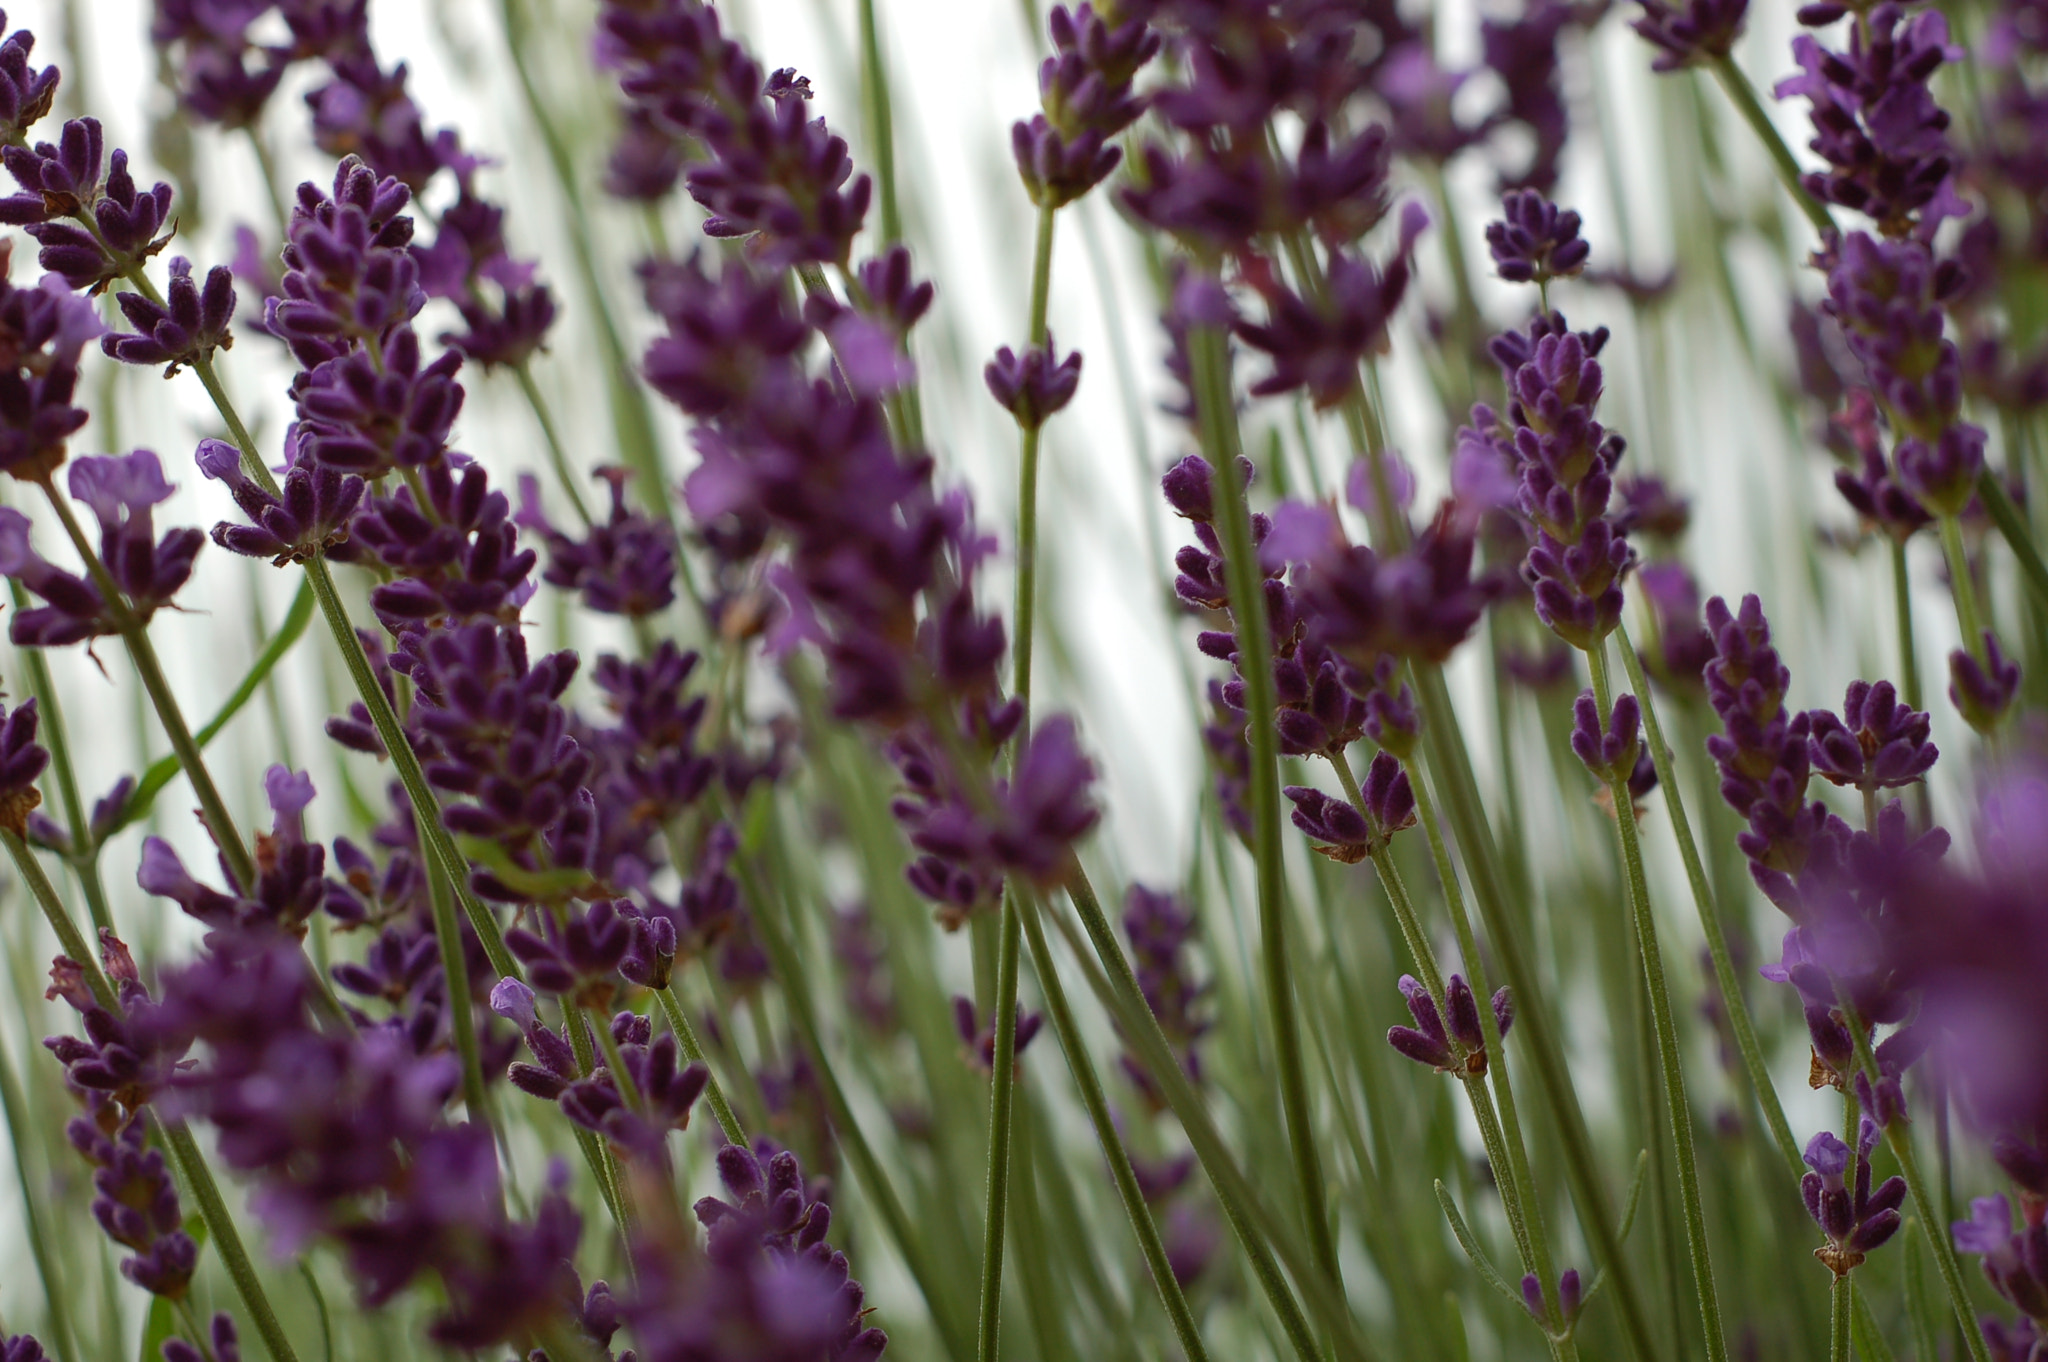 Photograph lavender by Kate Walker on 500px